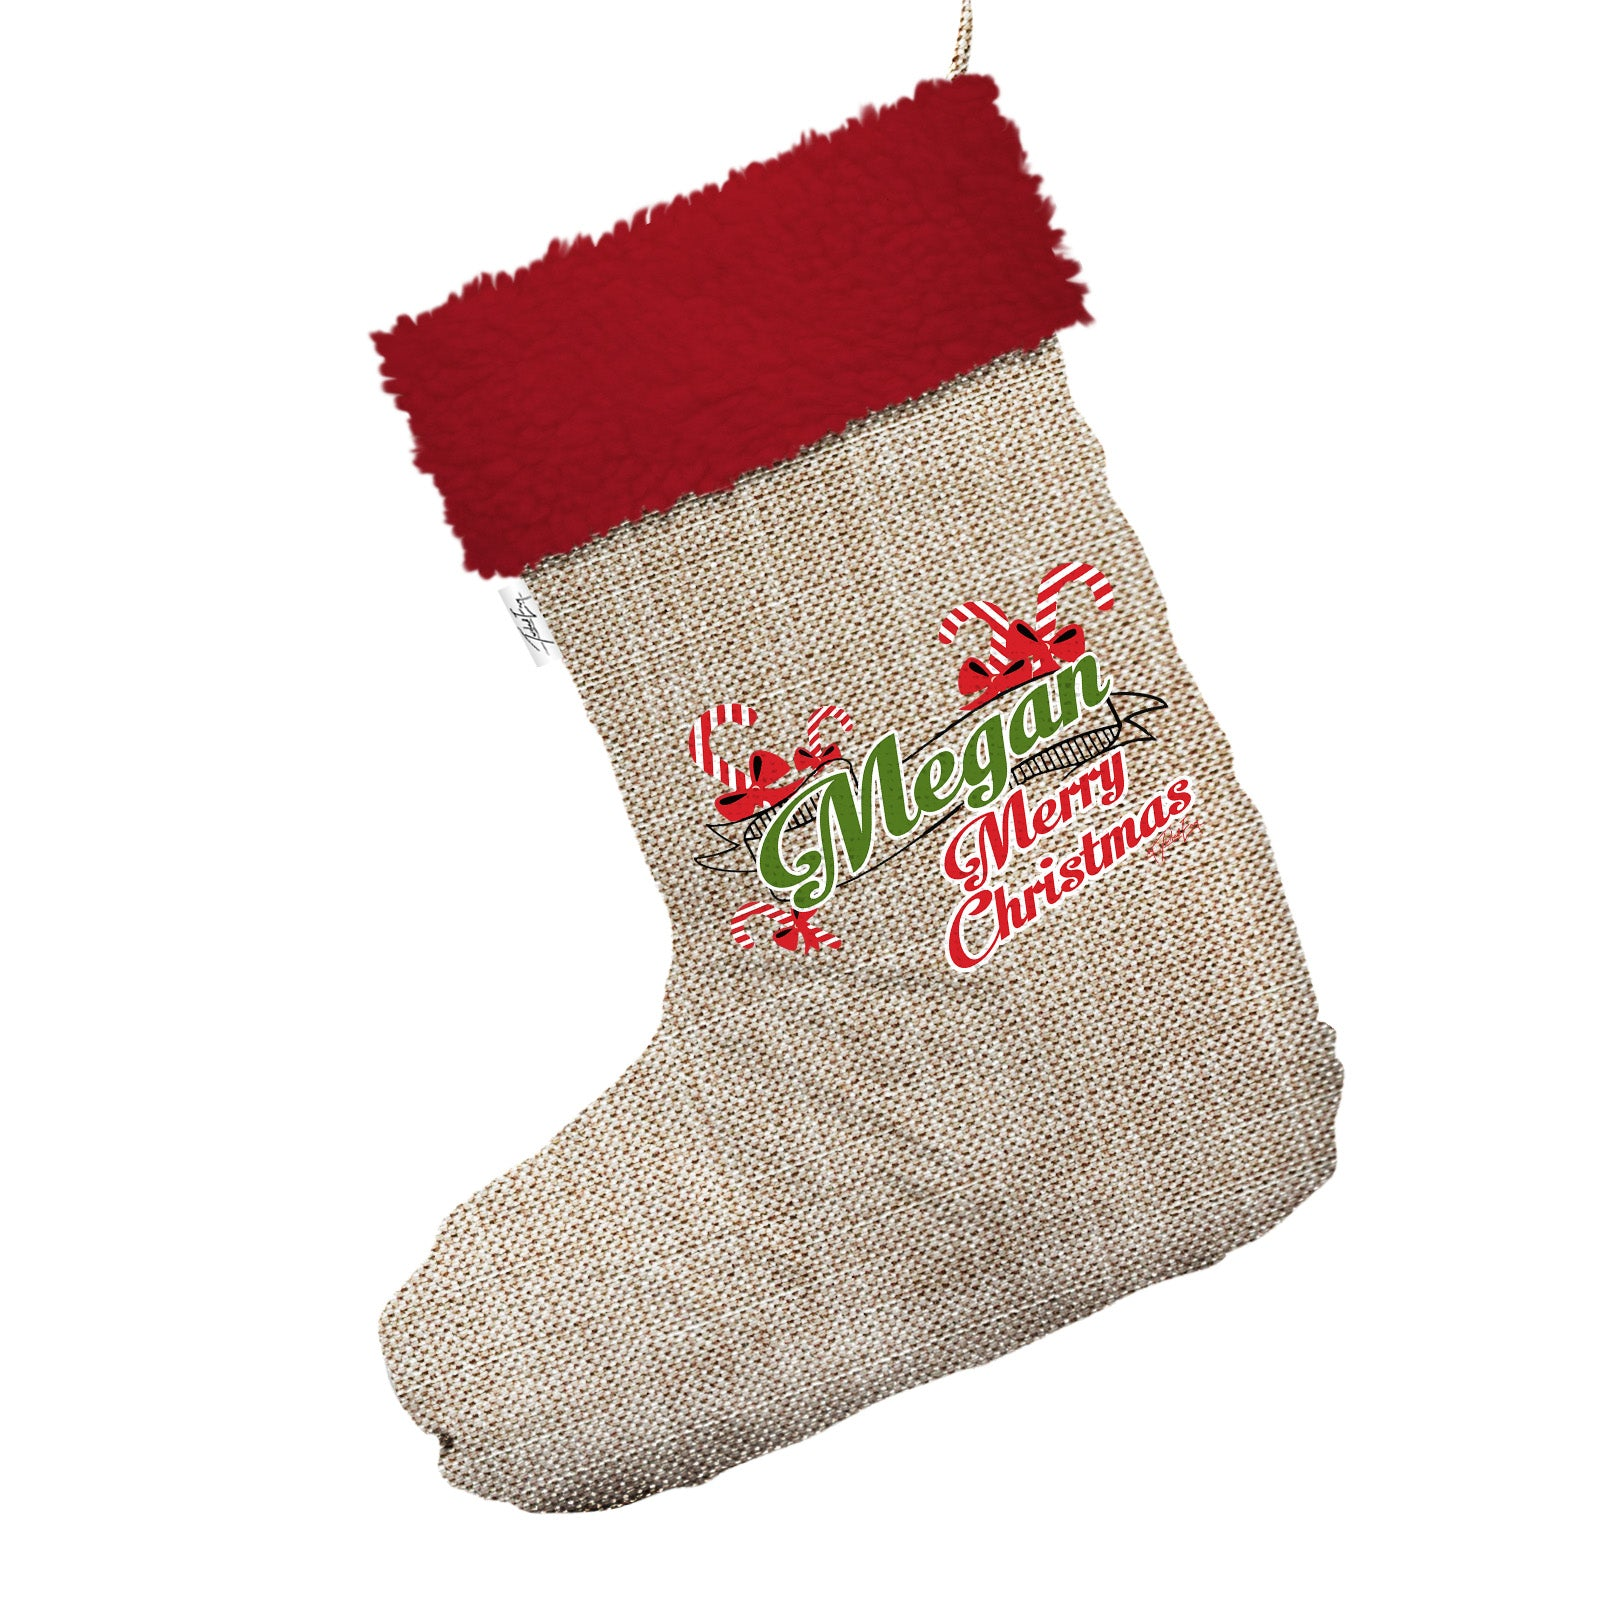 Personalised Candy Canes Jumbo Hessian Christmas Stocking With Red ...